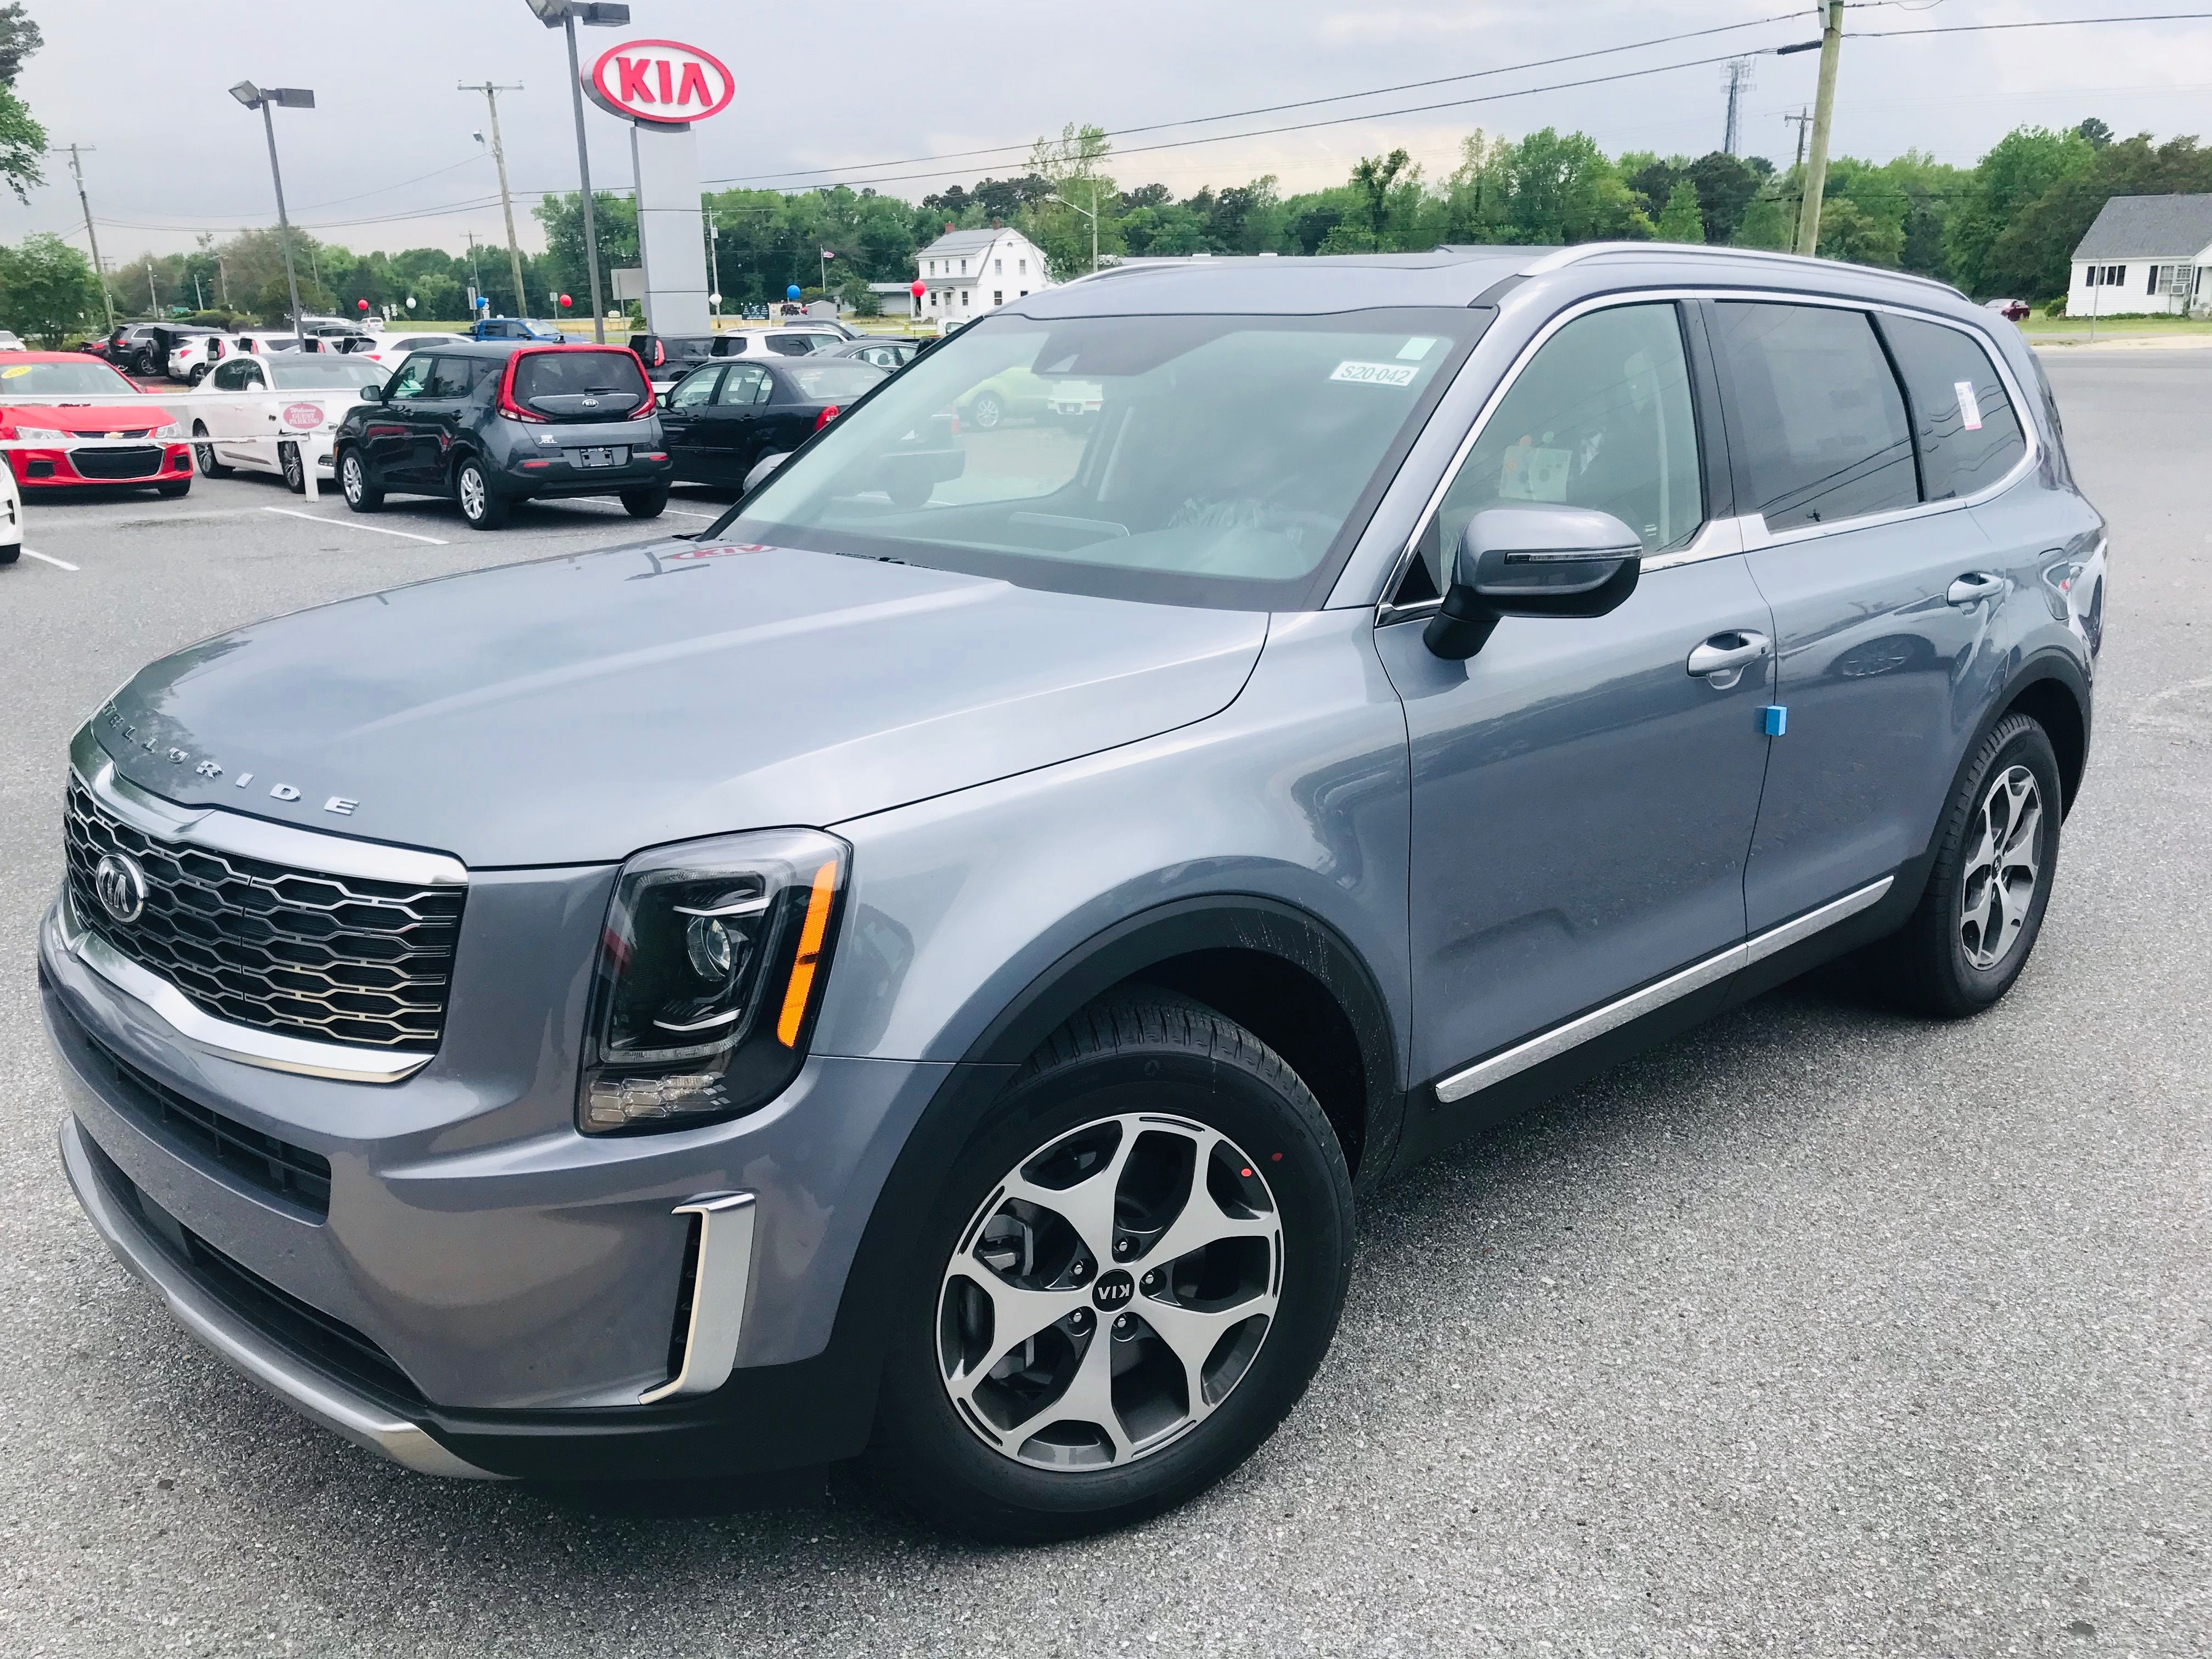 Fresh off the boat! This 2020 Kia Telluride just arrived